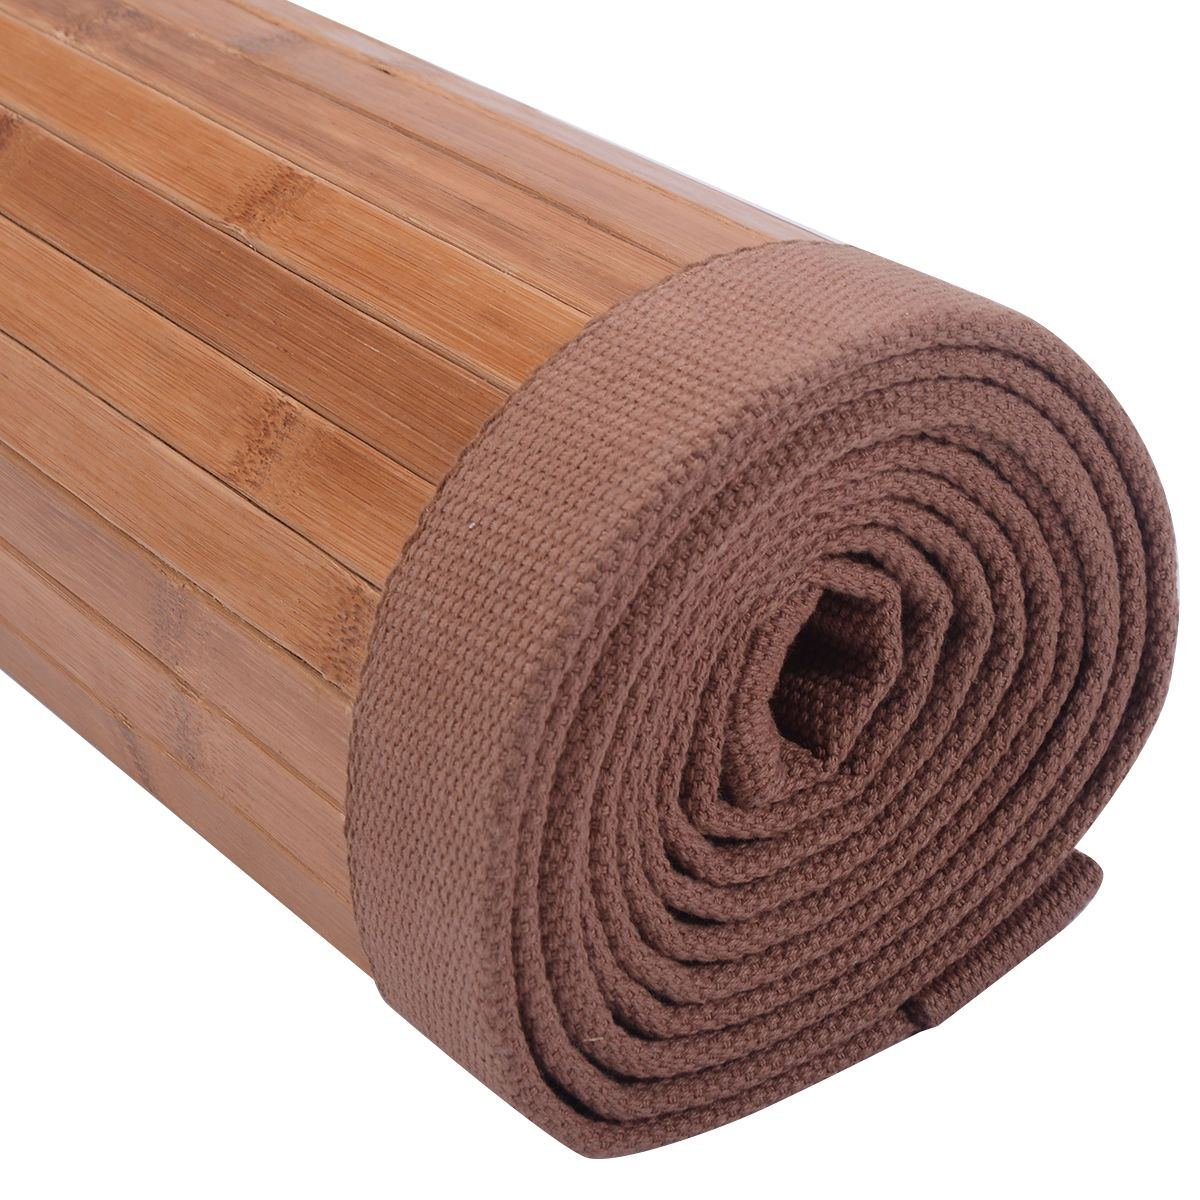 5' X 8' Bamboo Area Rug Floor Carpet Natural Bamboo Wood Indoor Outdoor New Durable Natural Bamboo Construction Easy To Clean And Durable by Unknown (Image #6)